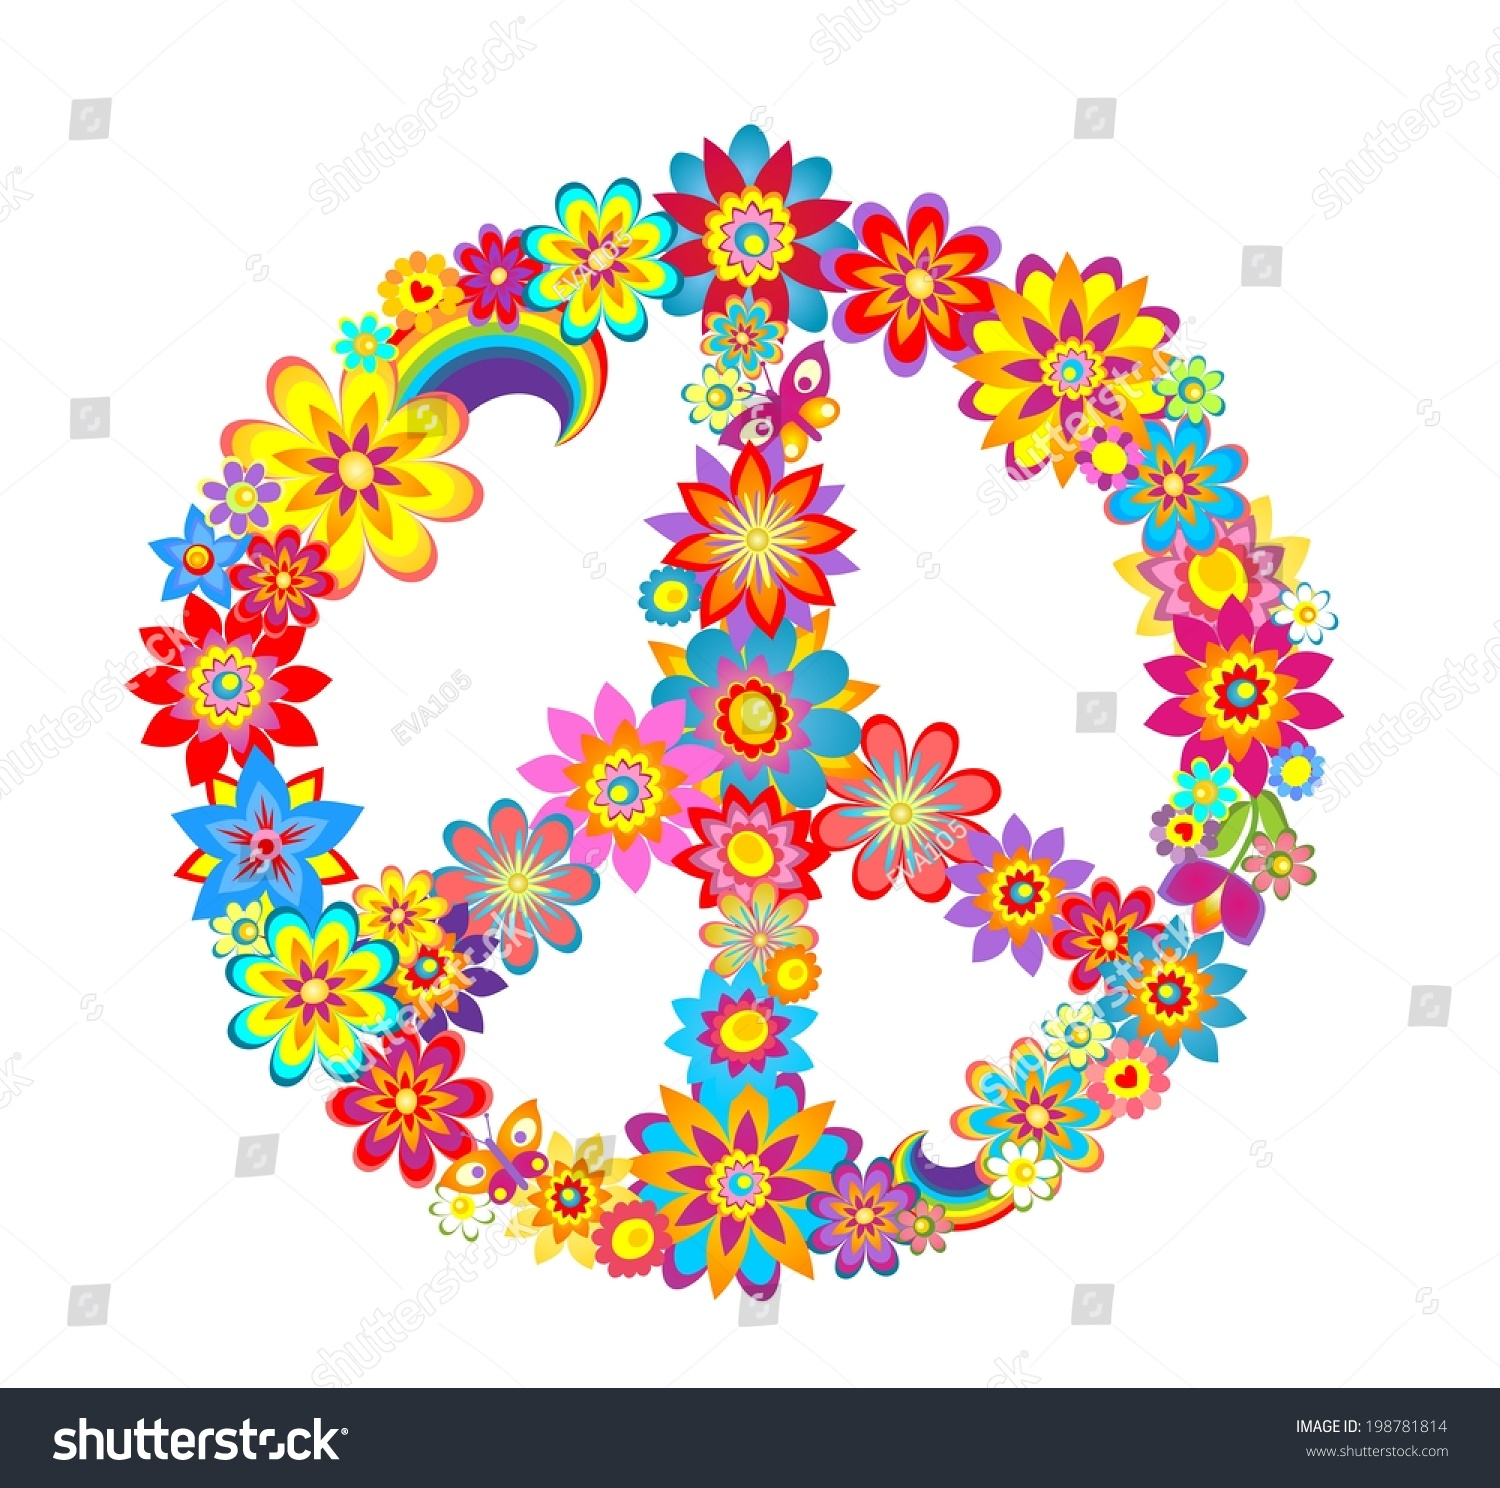 Peace Flower Symbol Stock Vector Shutterstock